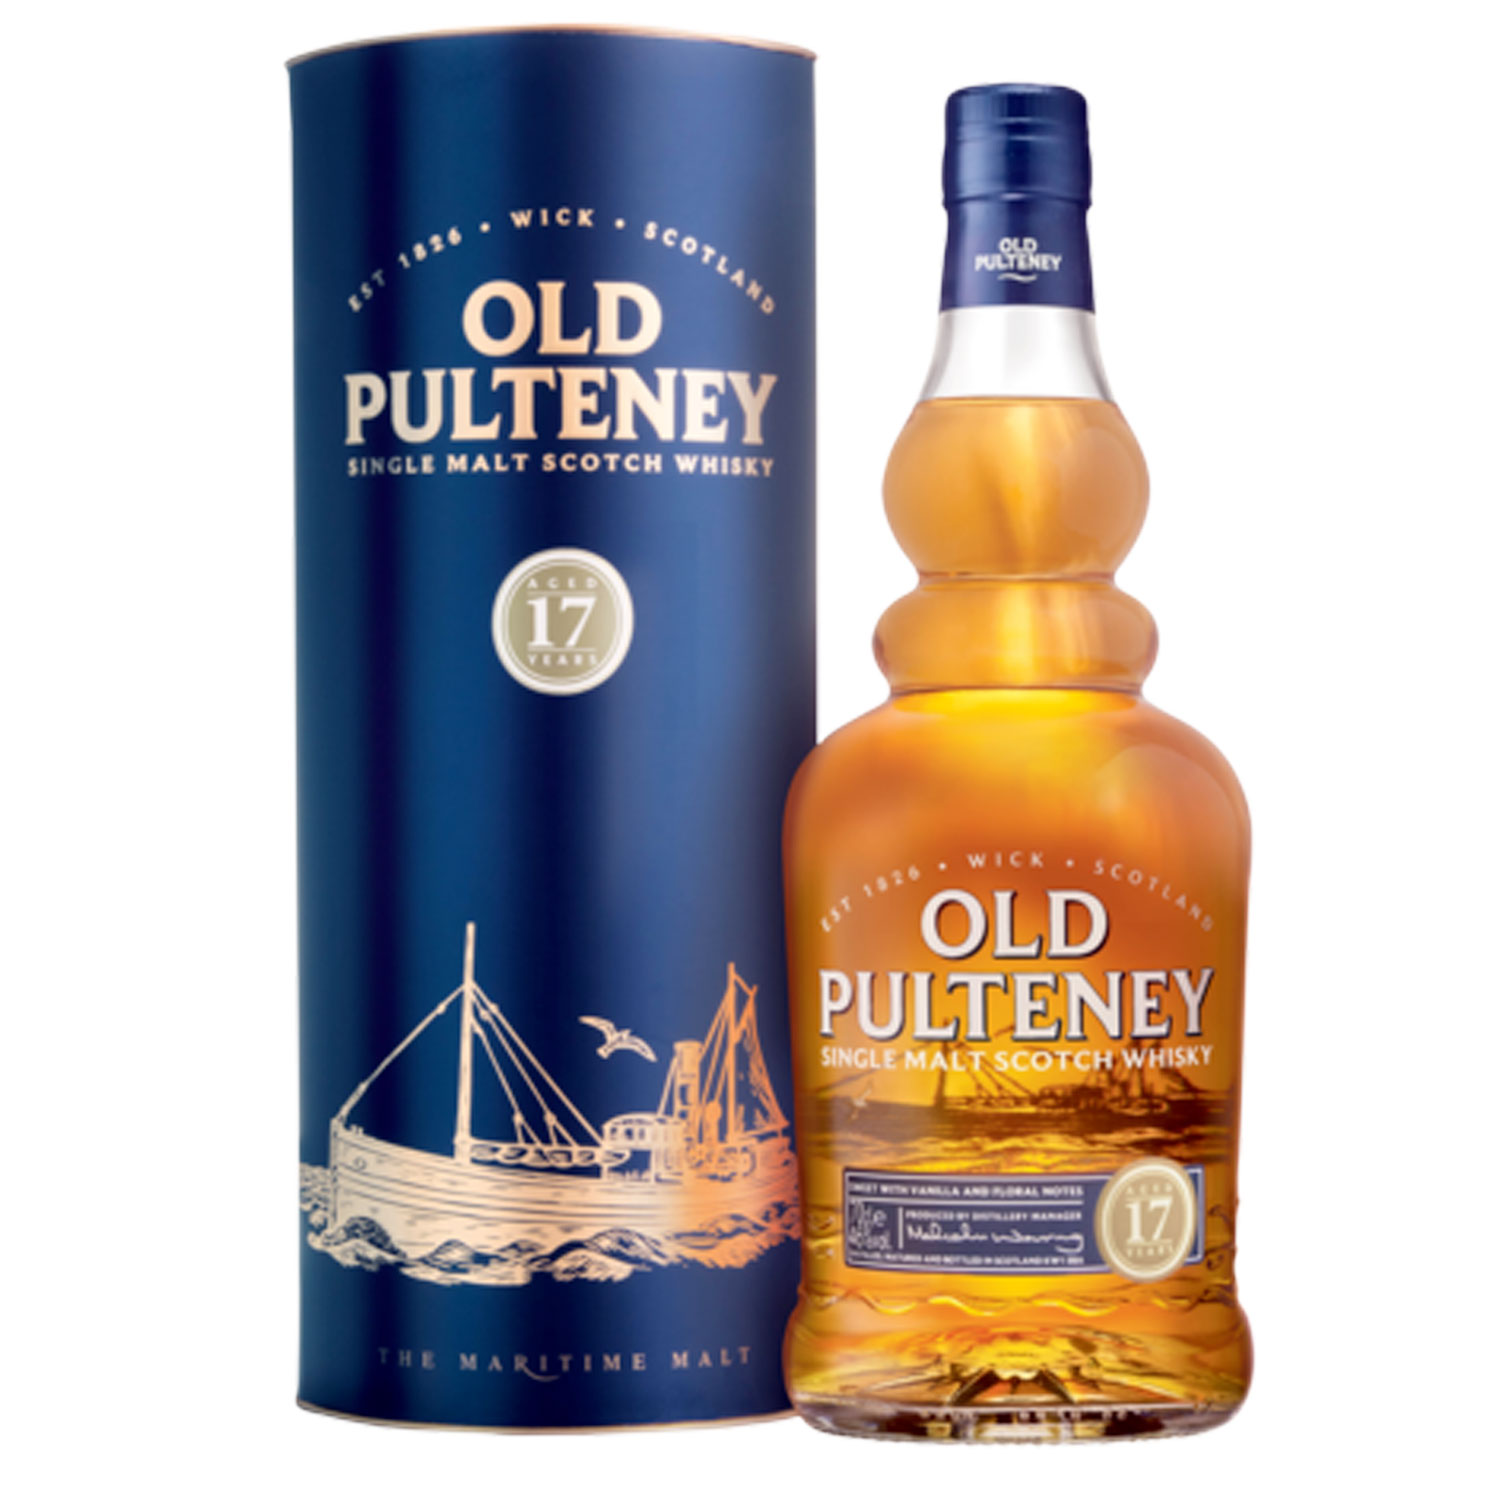 Whisky - Old Pulteney 17 ans - Single Malt - 70cl - 46°